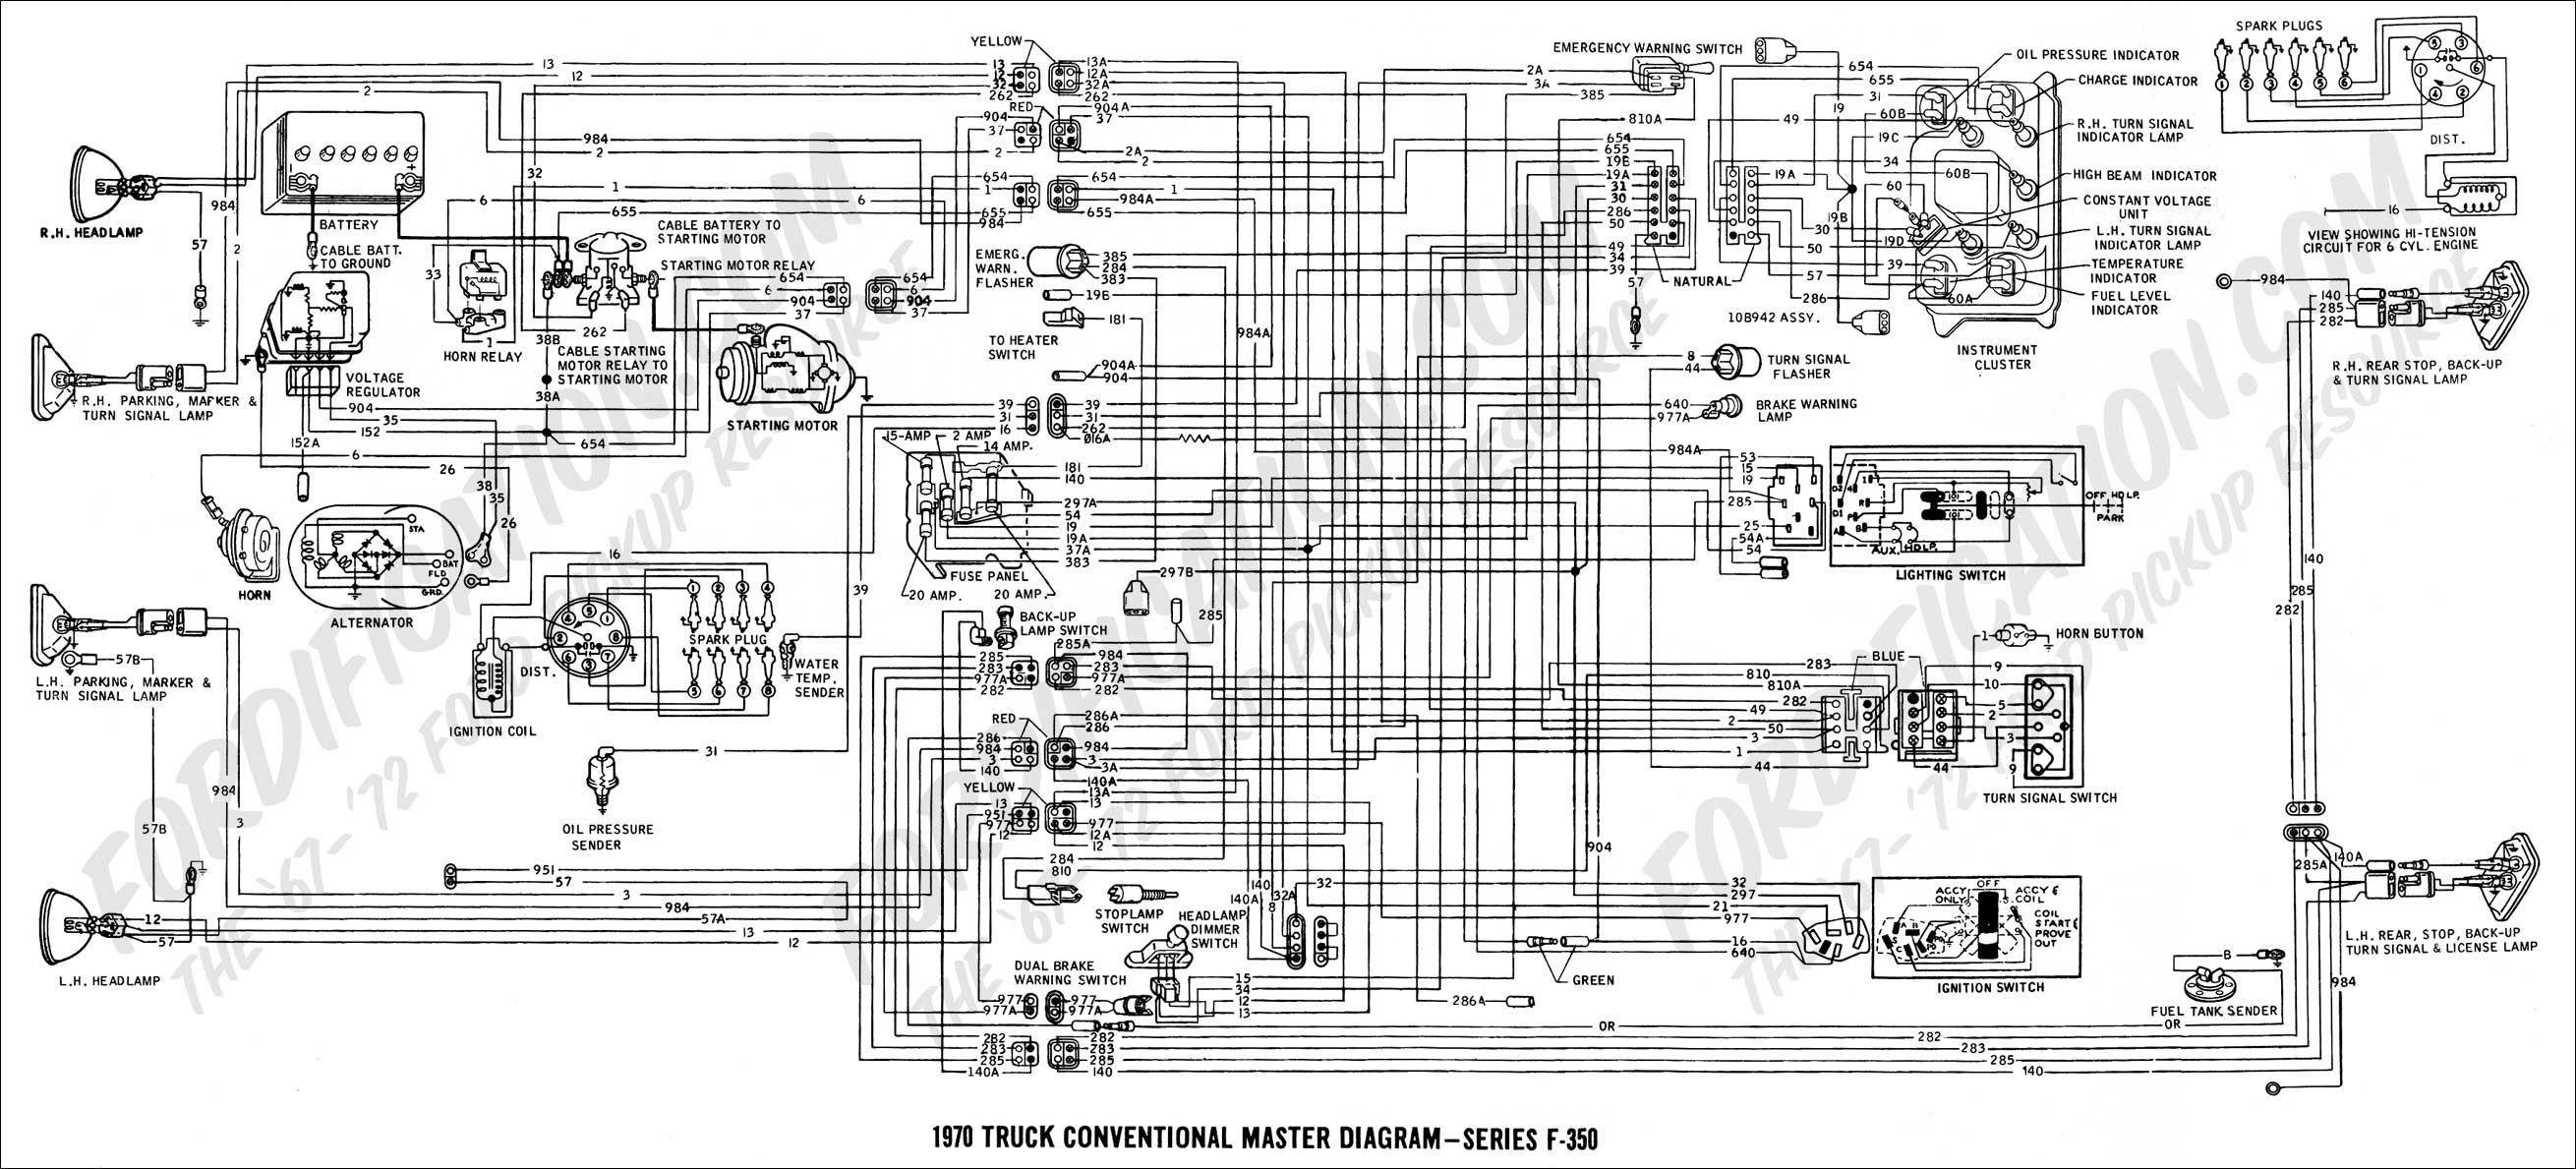 2001 ford f250 wiring schematic | edition wiring diagram data -  edition.adi-mer.it  adi-mer